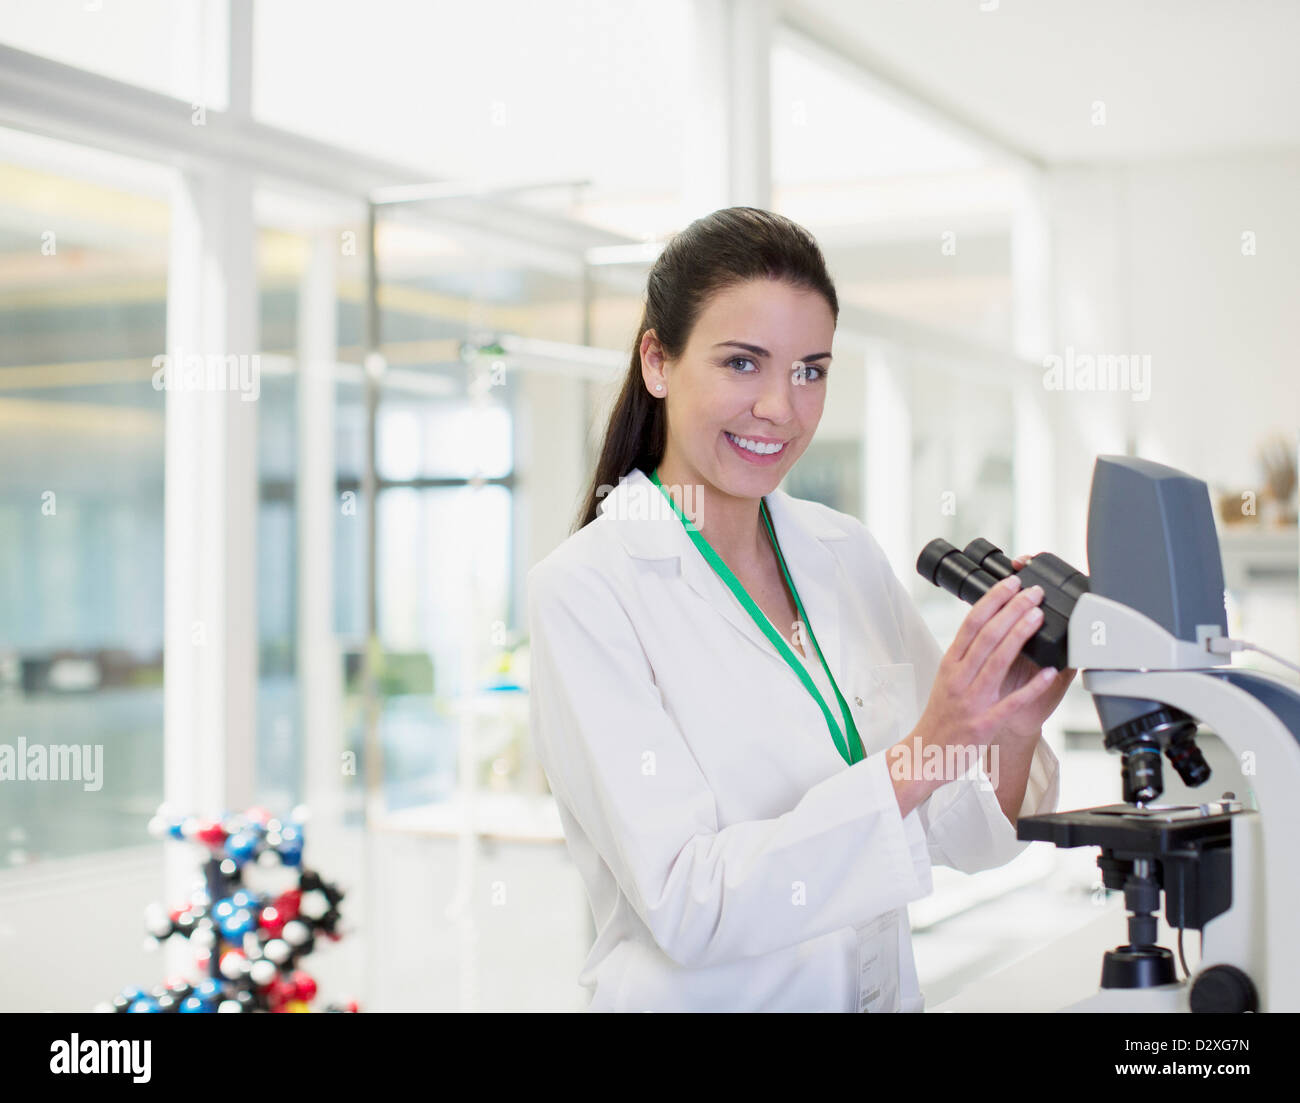 Portrait of smiling scientist using microscope in laboratory Photo Stock